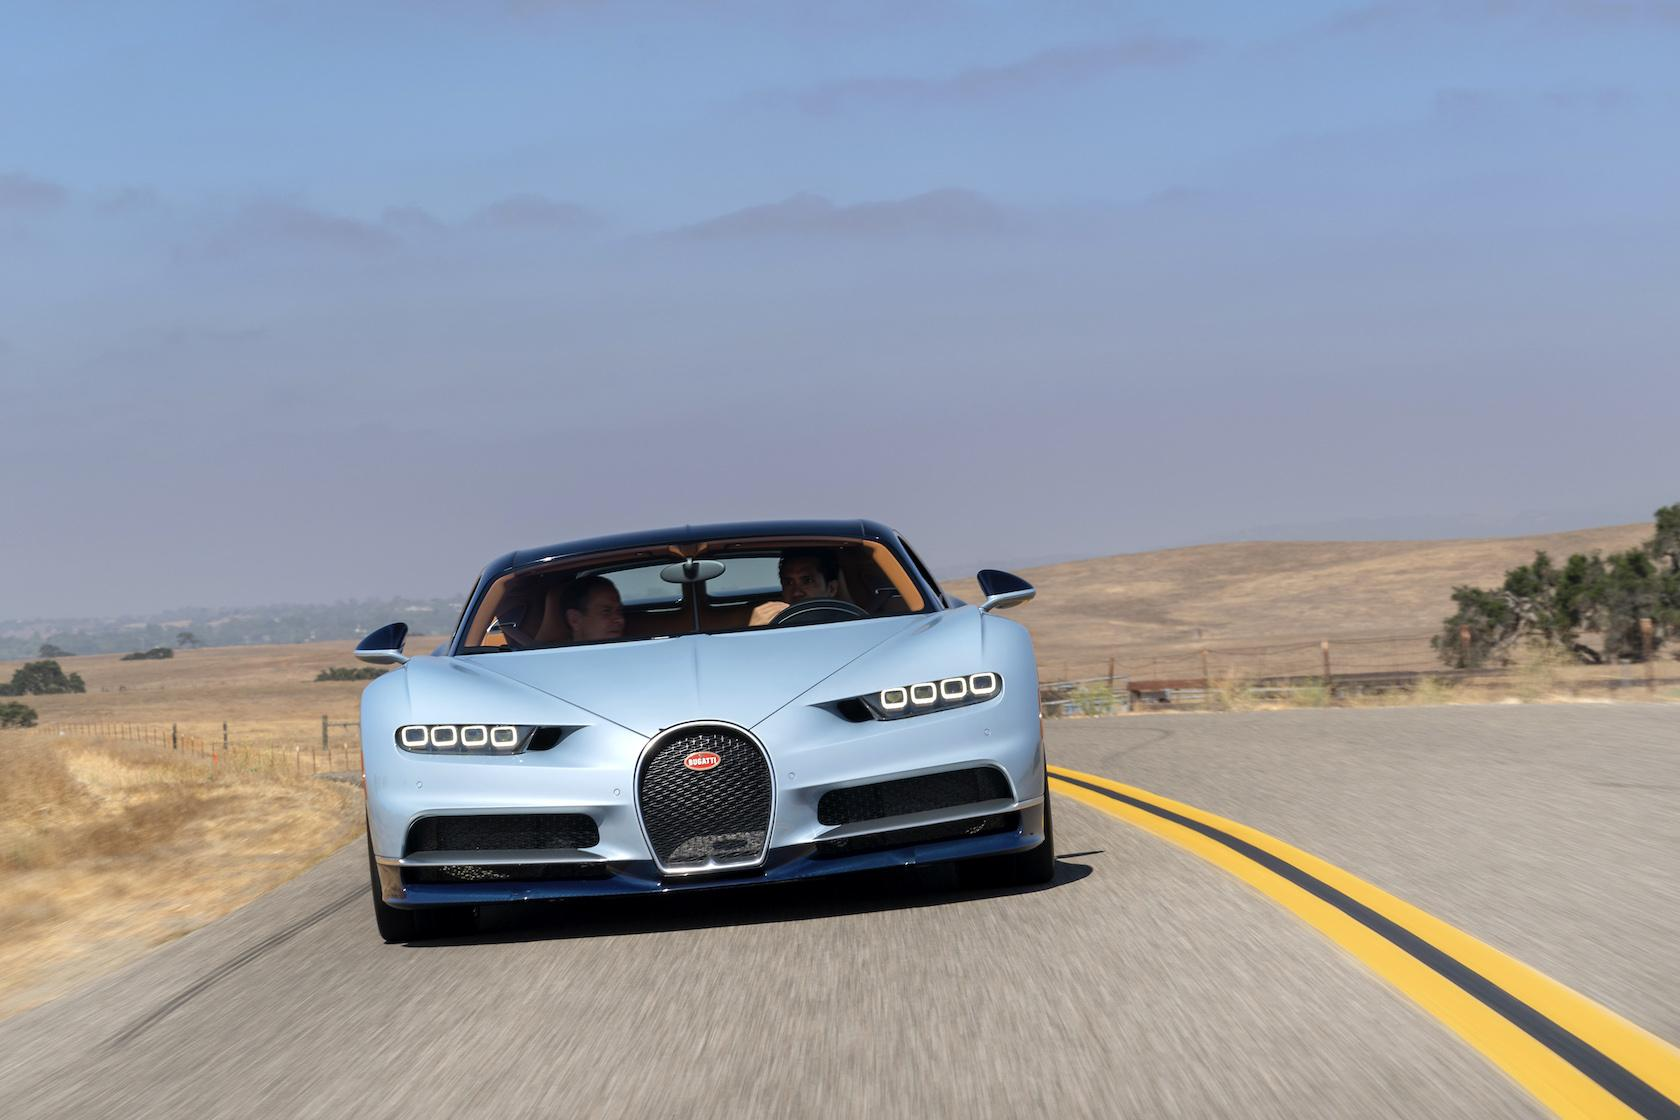 Driving the $3m Bugatti Chiron was nothing like I expected